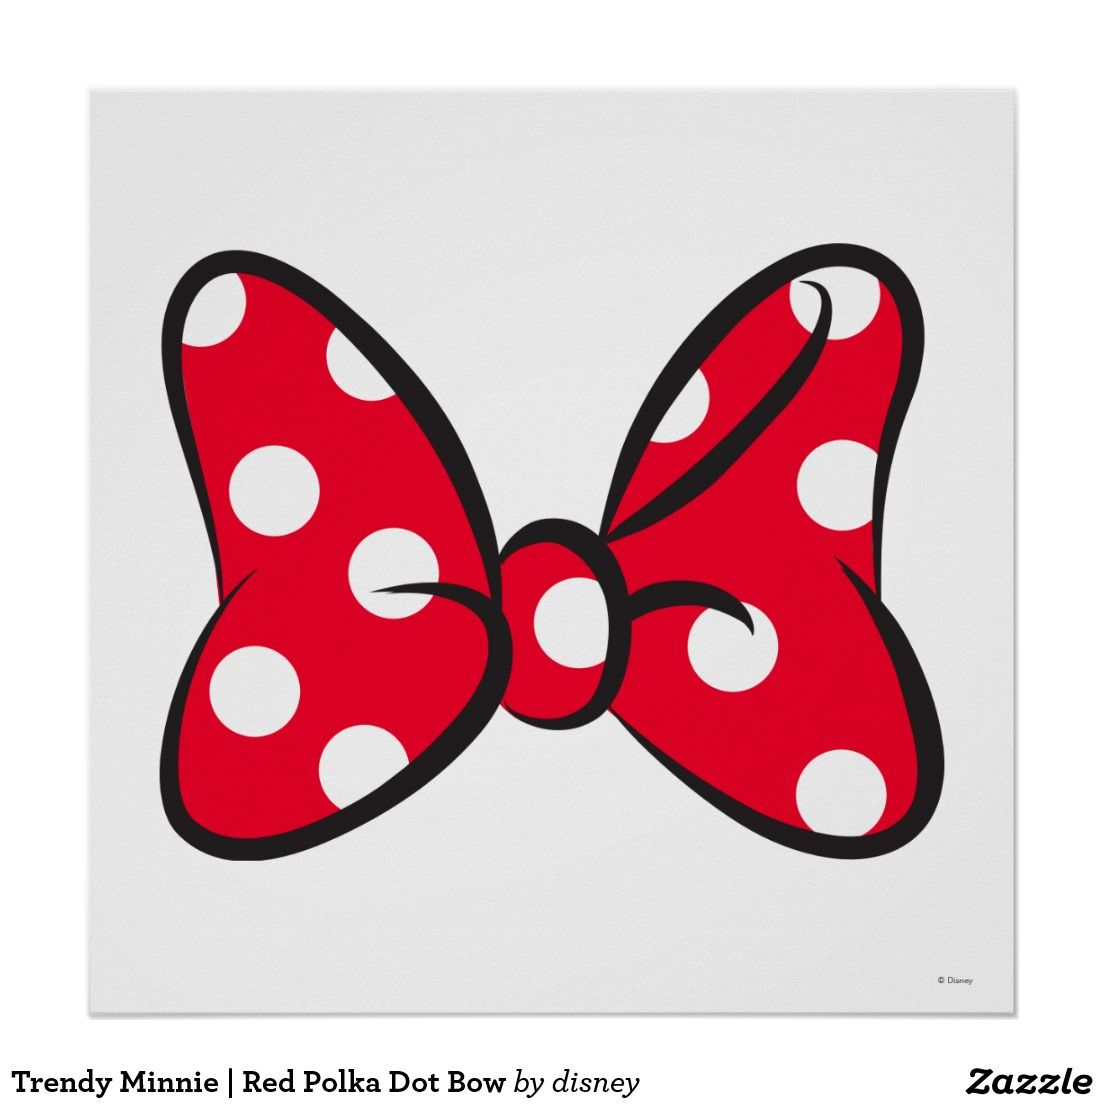 Trendy Minnie Red Polka Dot Bow Poster Zazzle Com In 2021 Minnie Mouse Template Minnie Mouse Bow Minnie